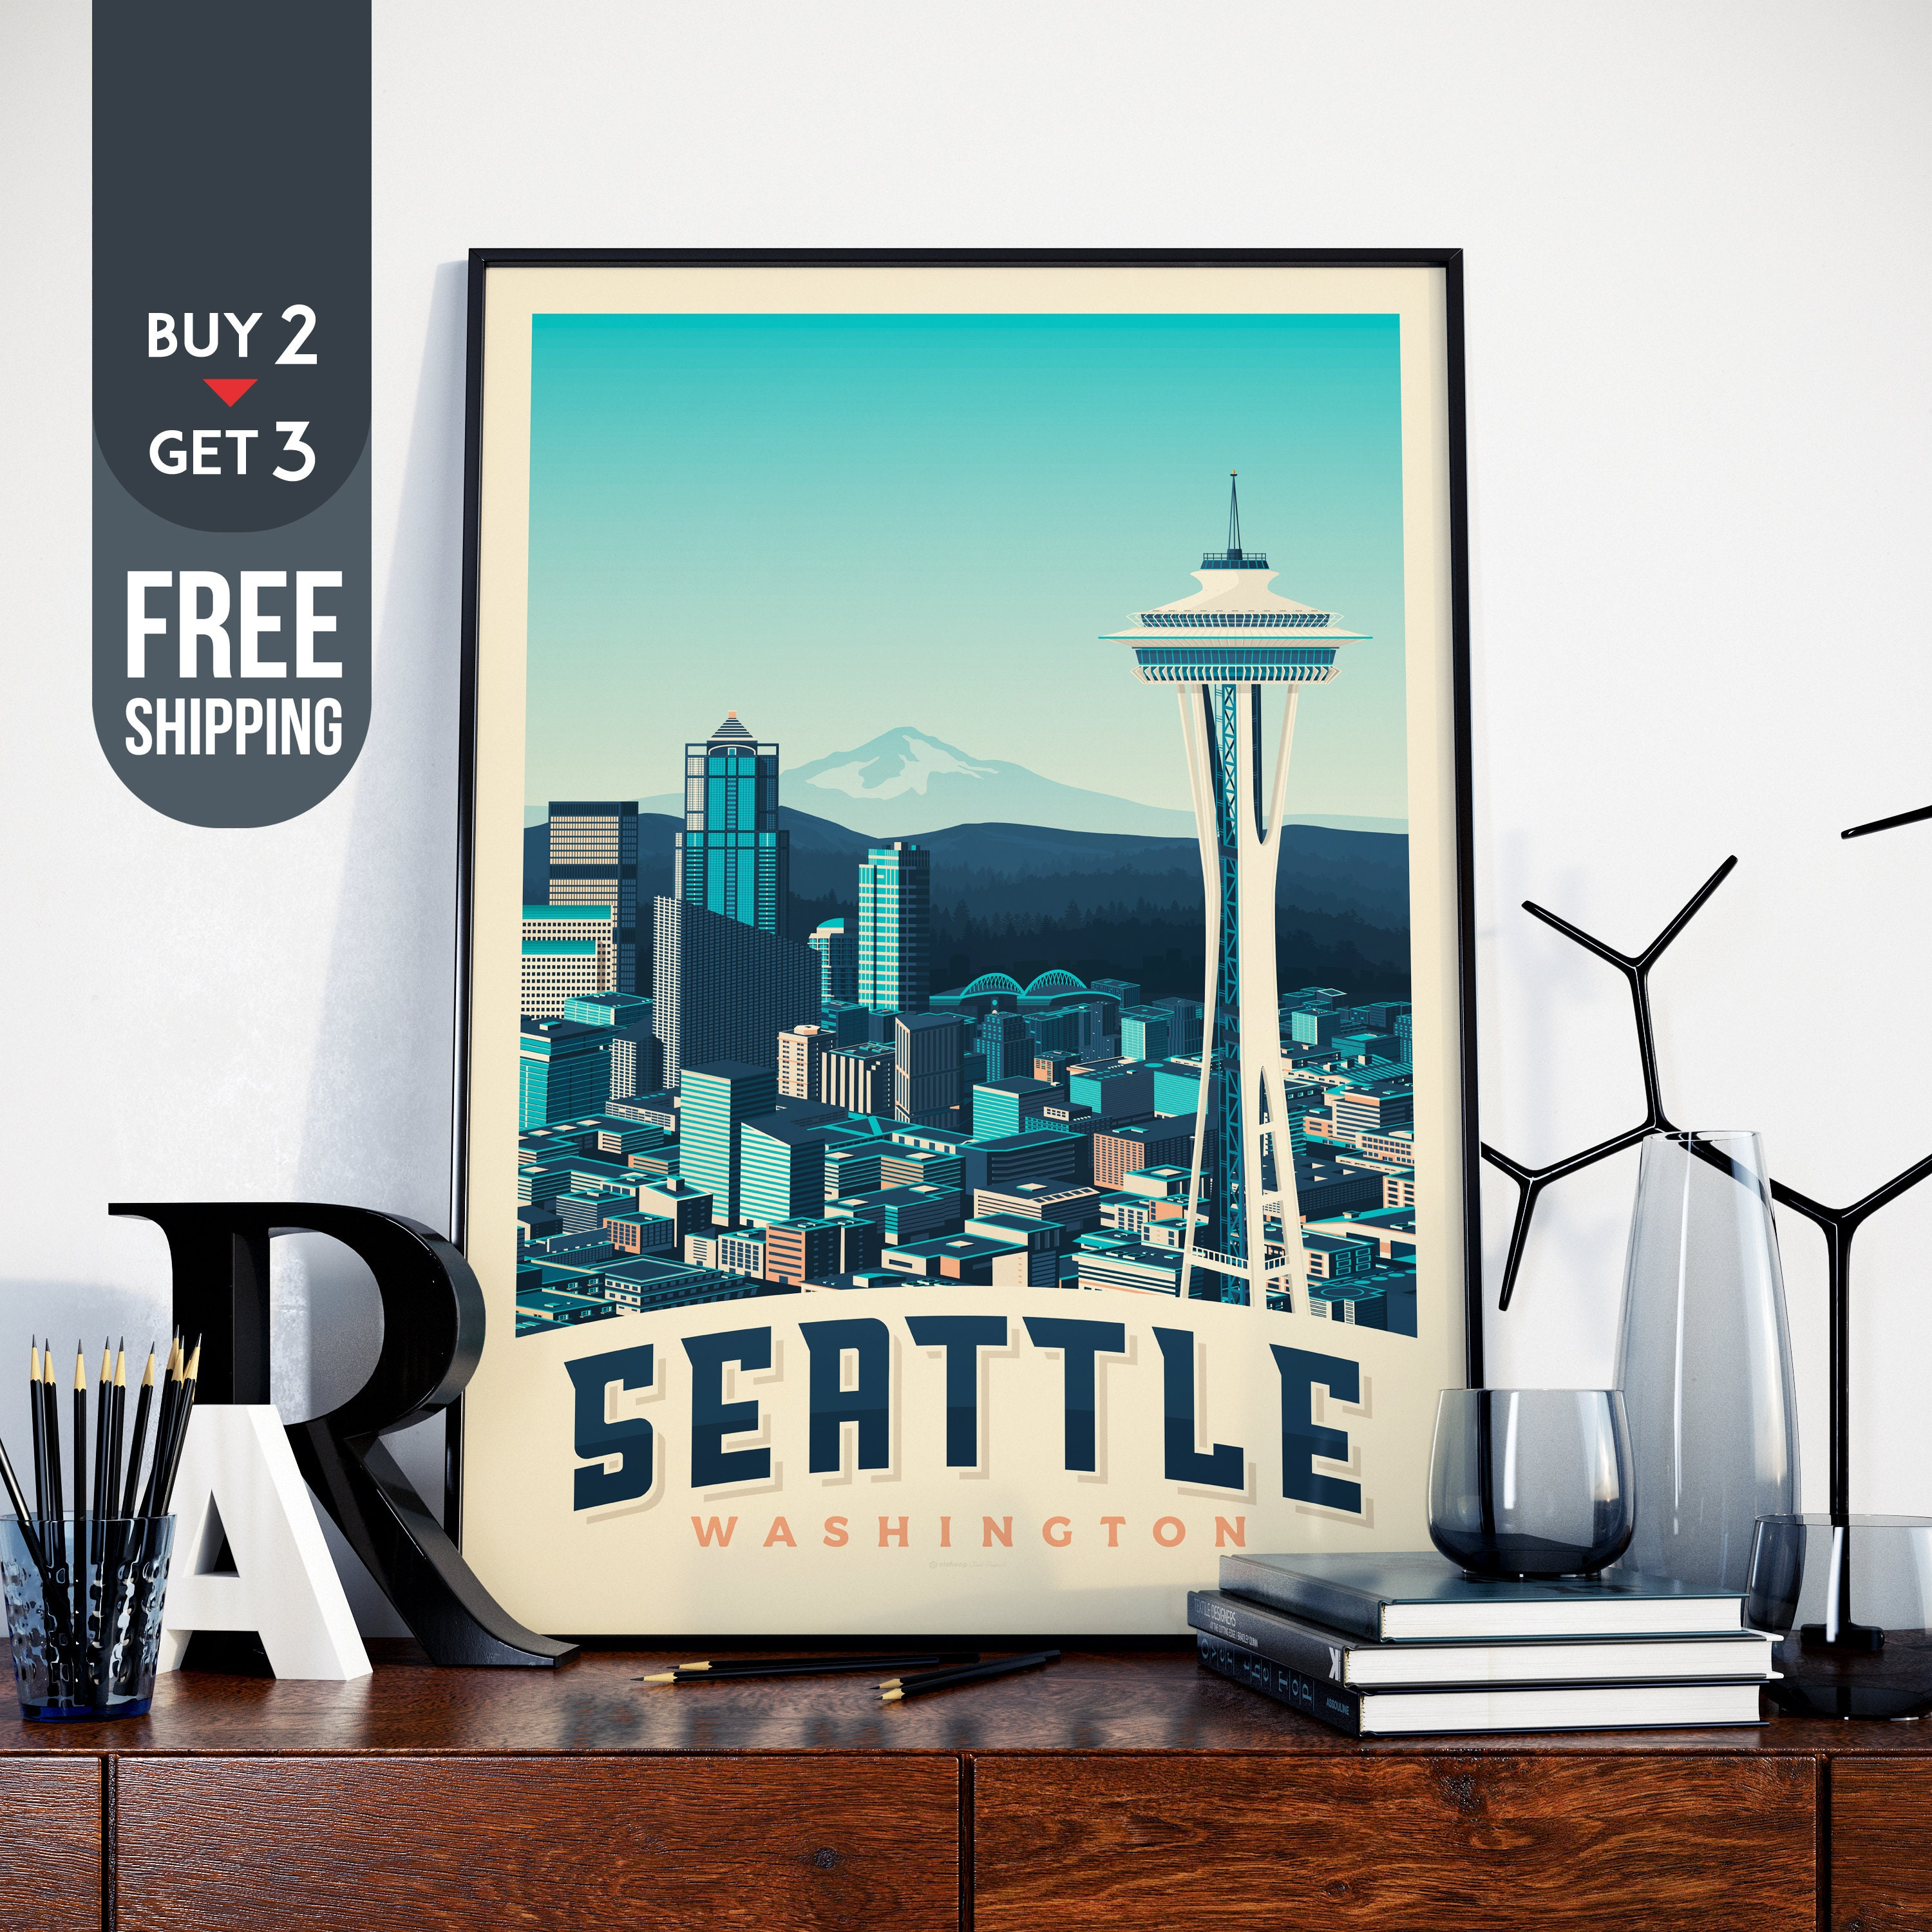 Seattle USA Vintage Travel Poster Print Usa Wall Art Home Decoration Decor Gift Idea Space Needle